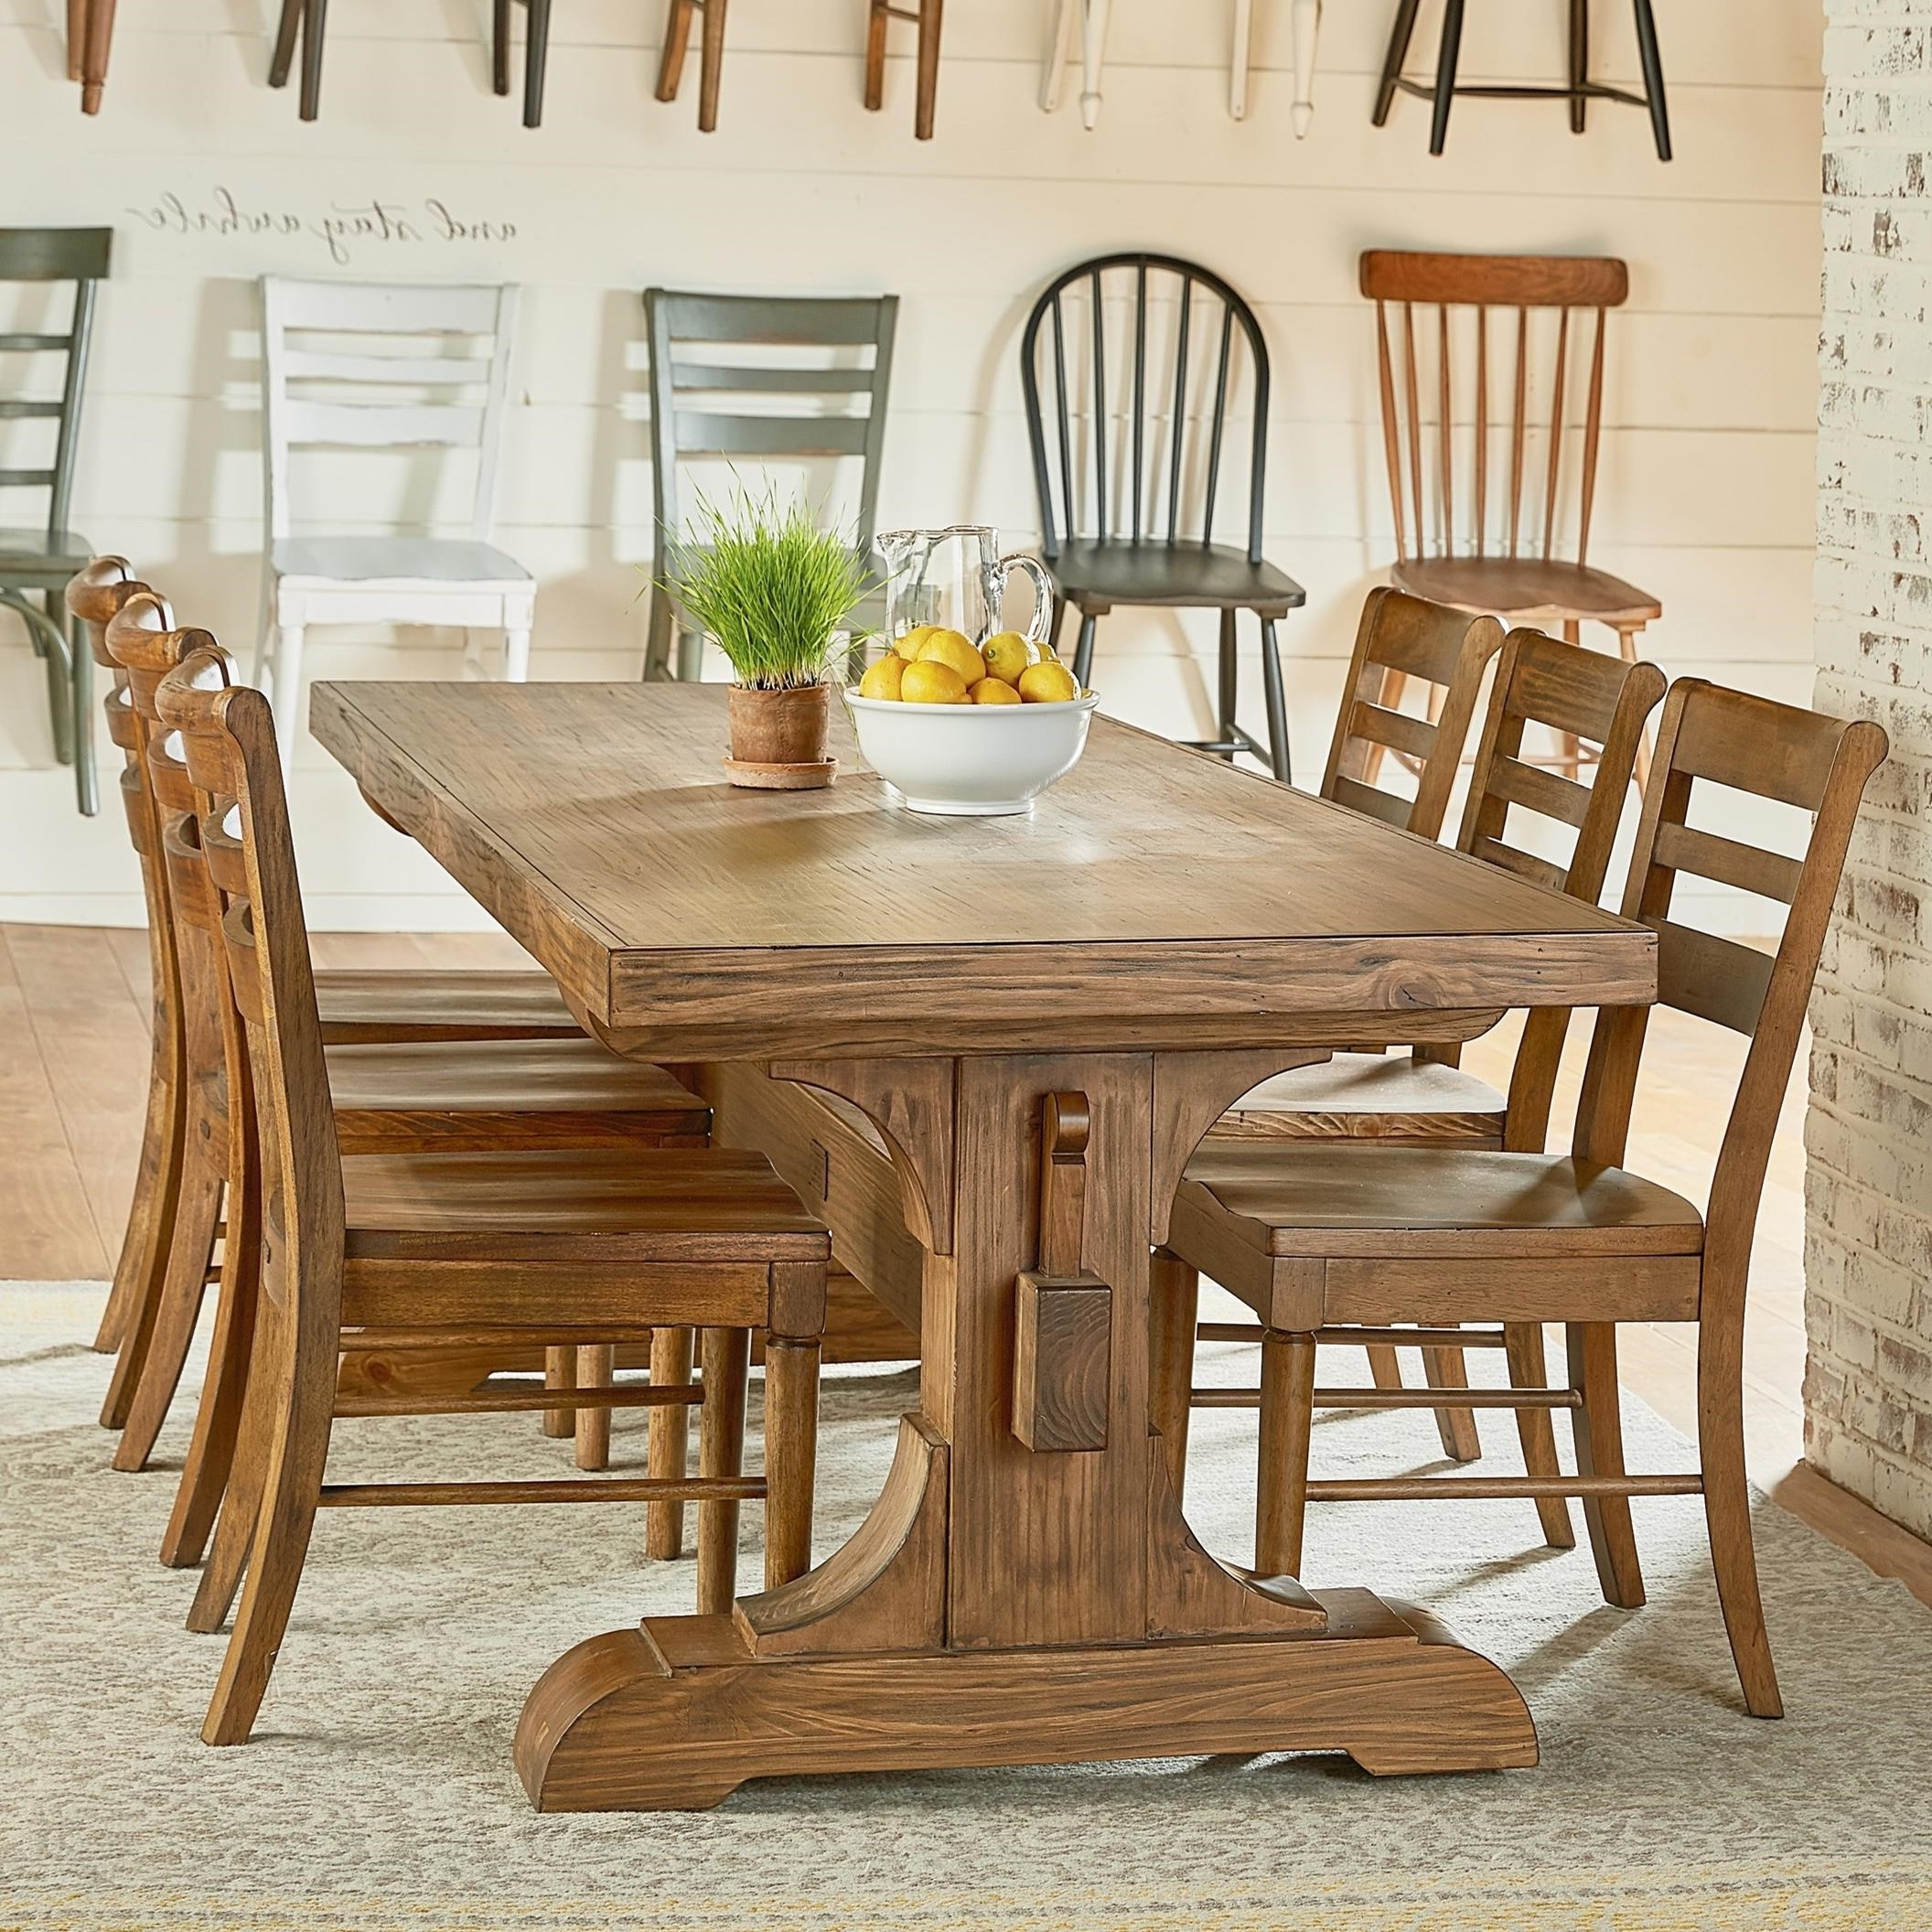 Latest Magnolia Home Top Tier Round Dining Tables With Regard To Magnolia Homejoanna Gaines Farmhouse Seven Piece Trestle Table (View 8 of 25)